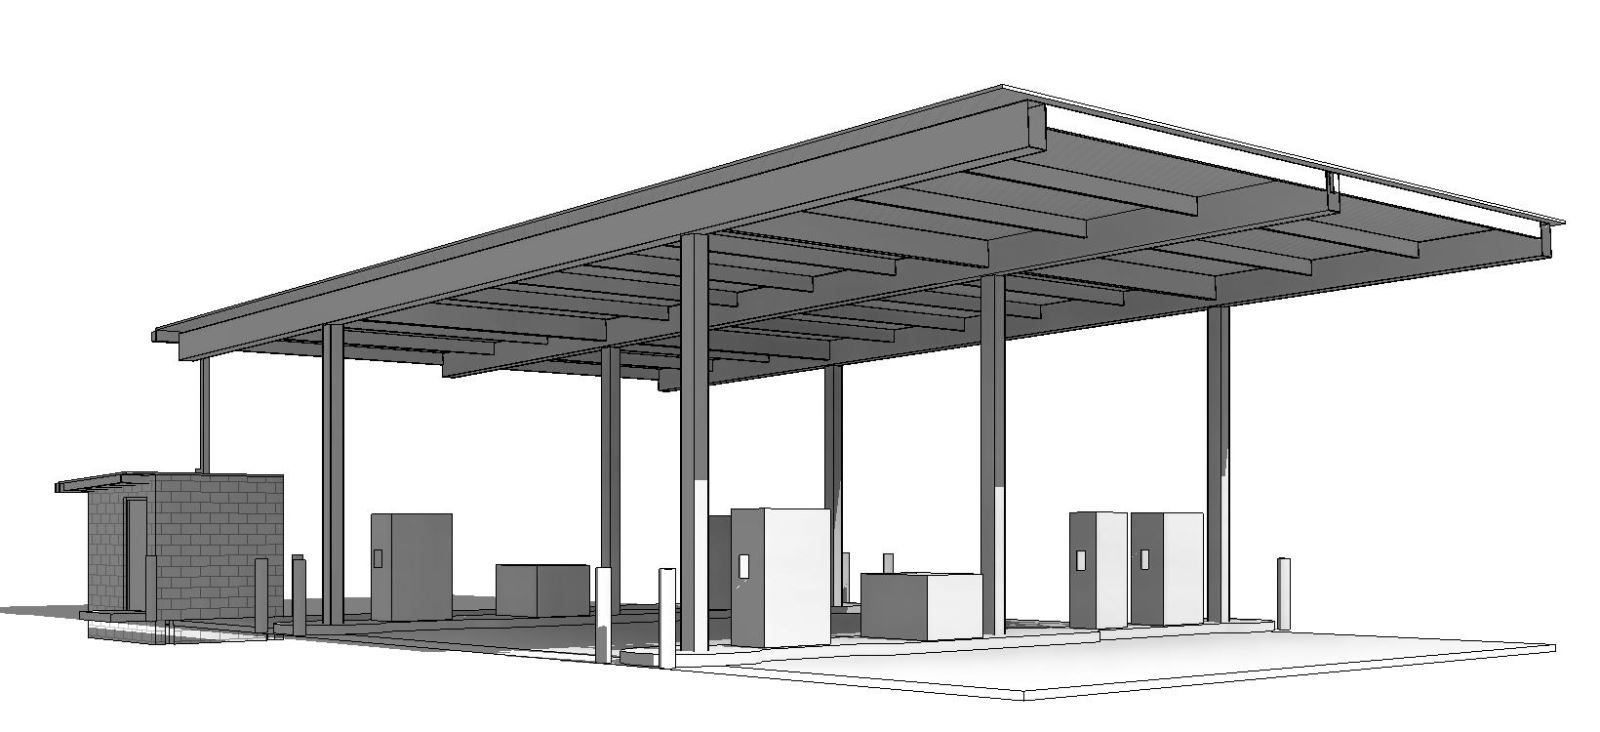 MASP & PSTA Project 3: Public Safety Training Academy - PSTA 3R Exterior View of Fuel Facility